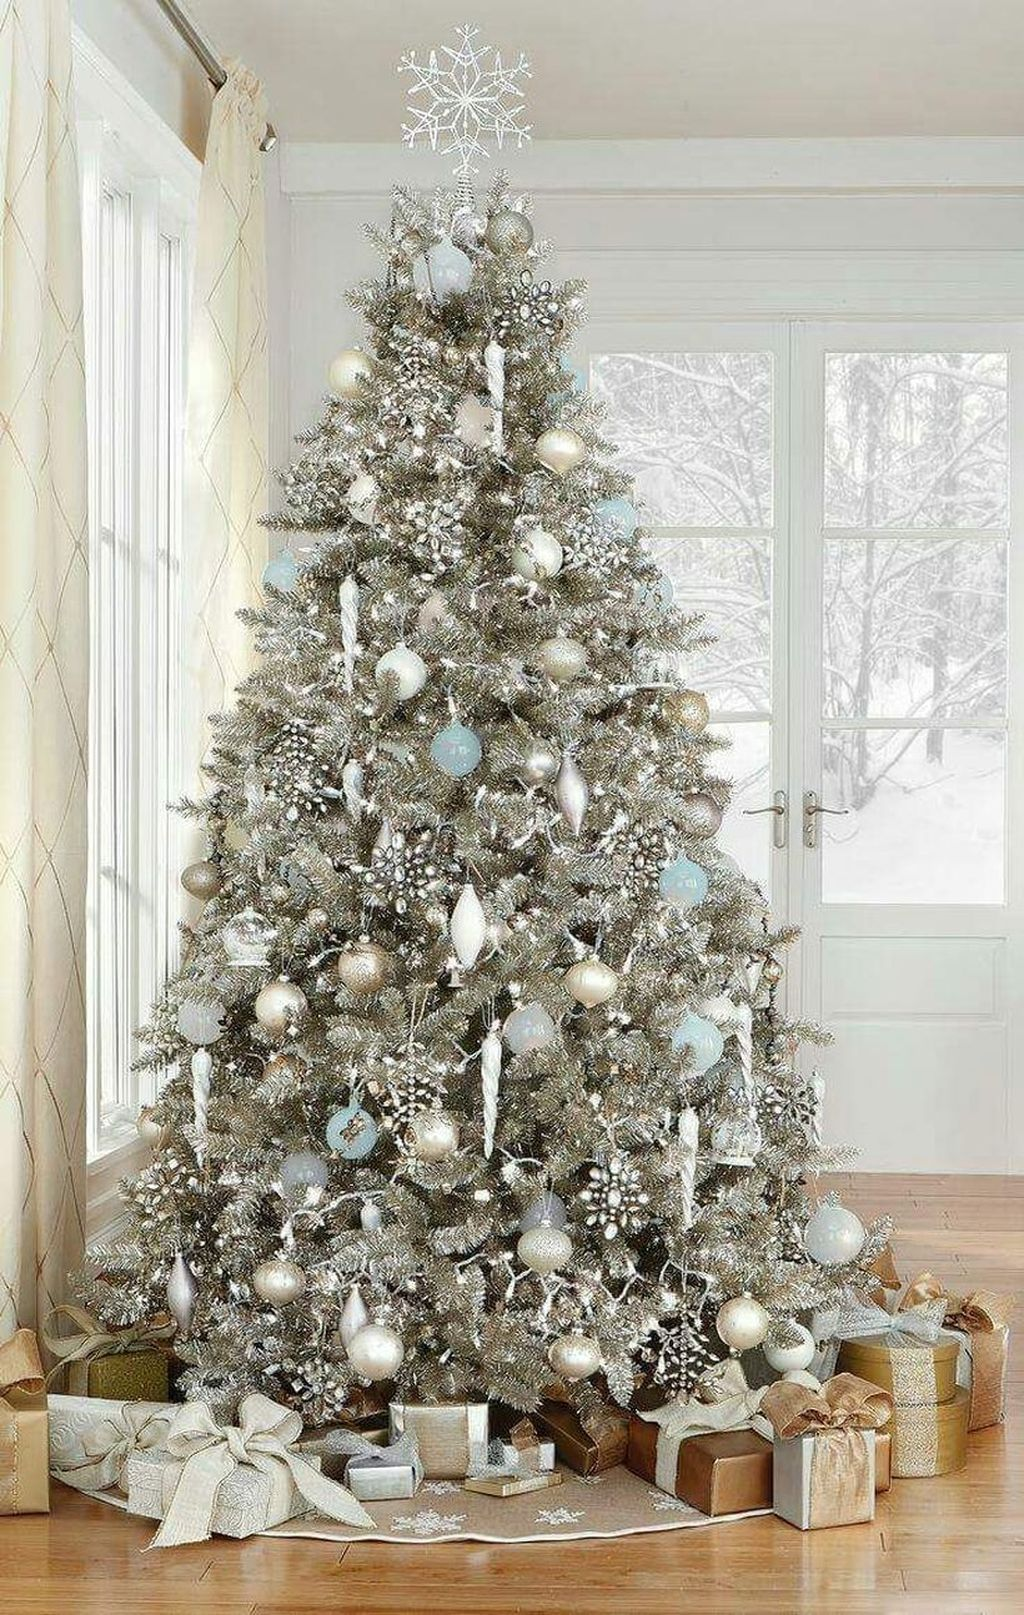 Stunning White Christmas Tree Ideas To Decorate Your Interior 34